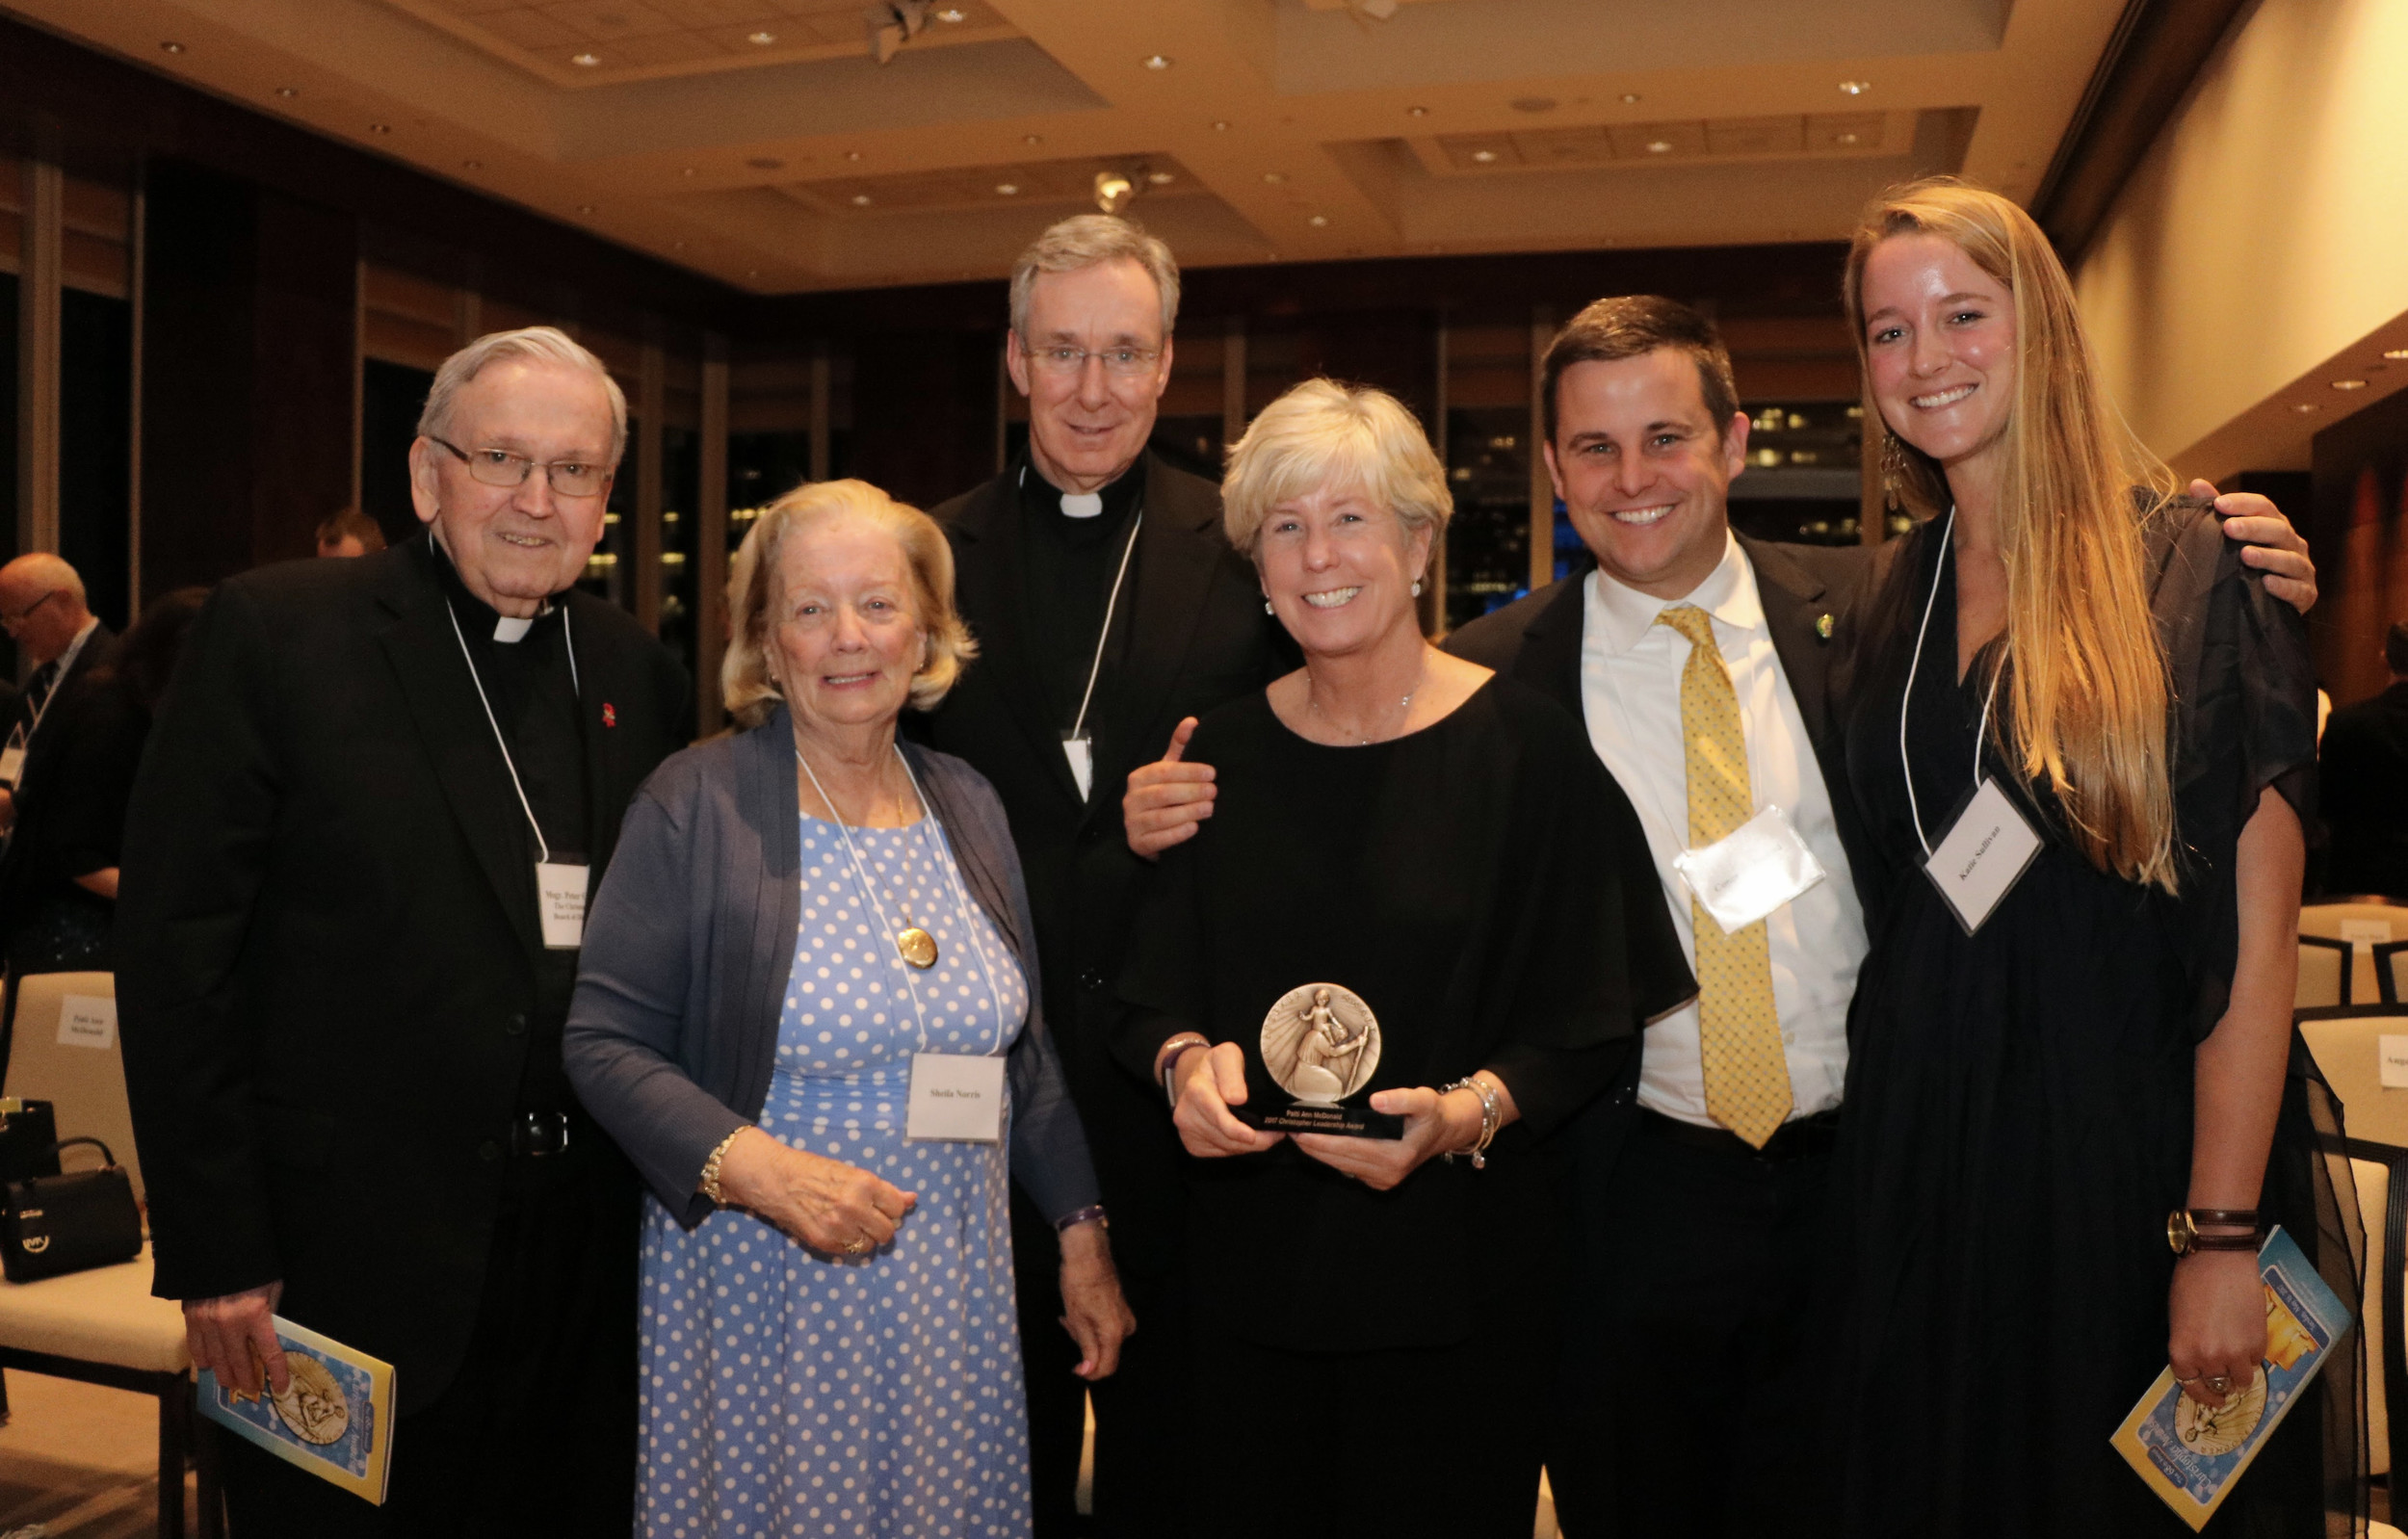 McDonald with her family and friends after the ceremony. From left are Monsignor Peter Finn, Sheila Norris, Rev. Peter Le Jacq, NYPD Sgt. Conor McDonald and his girlfriend Katie.